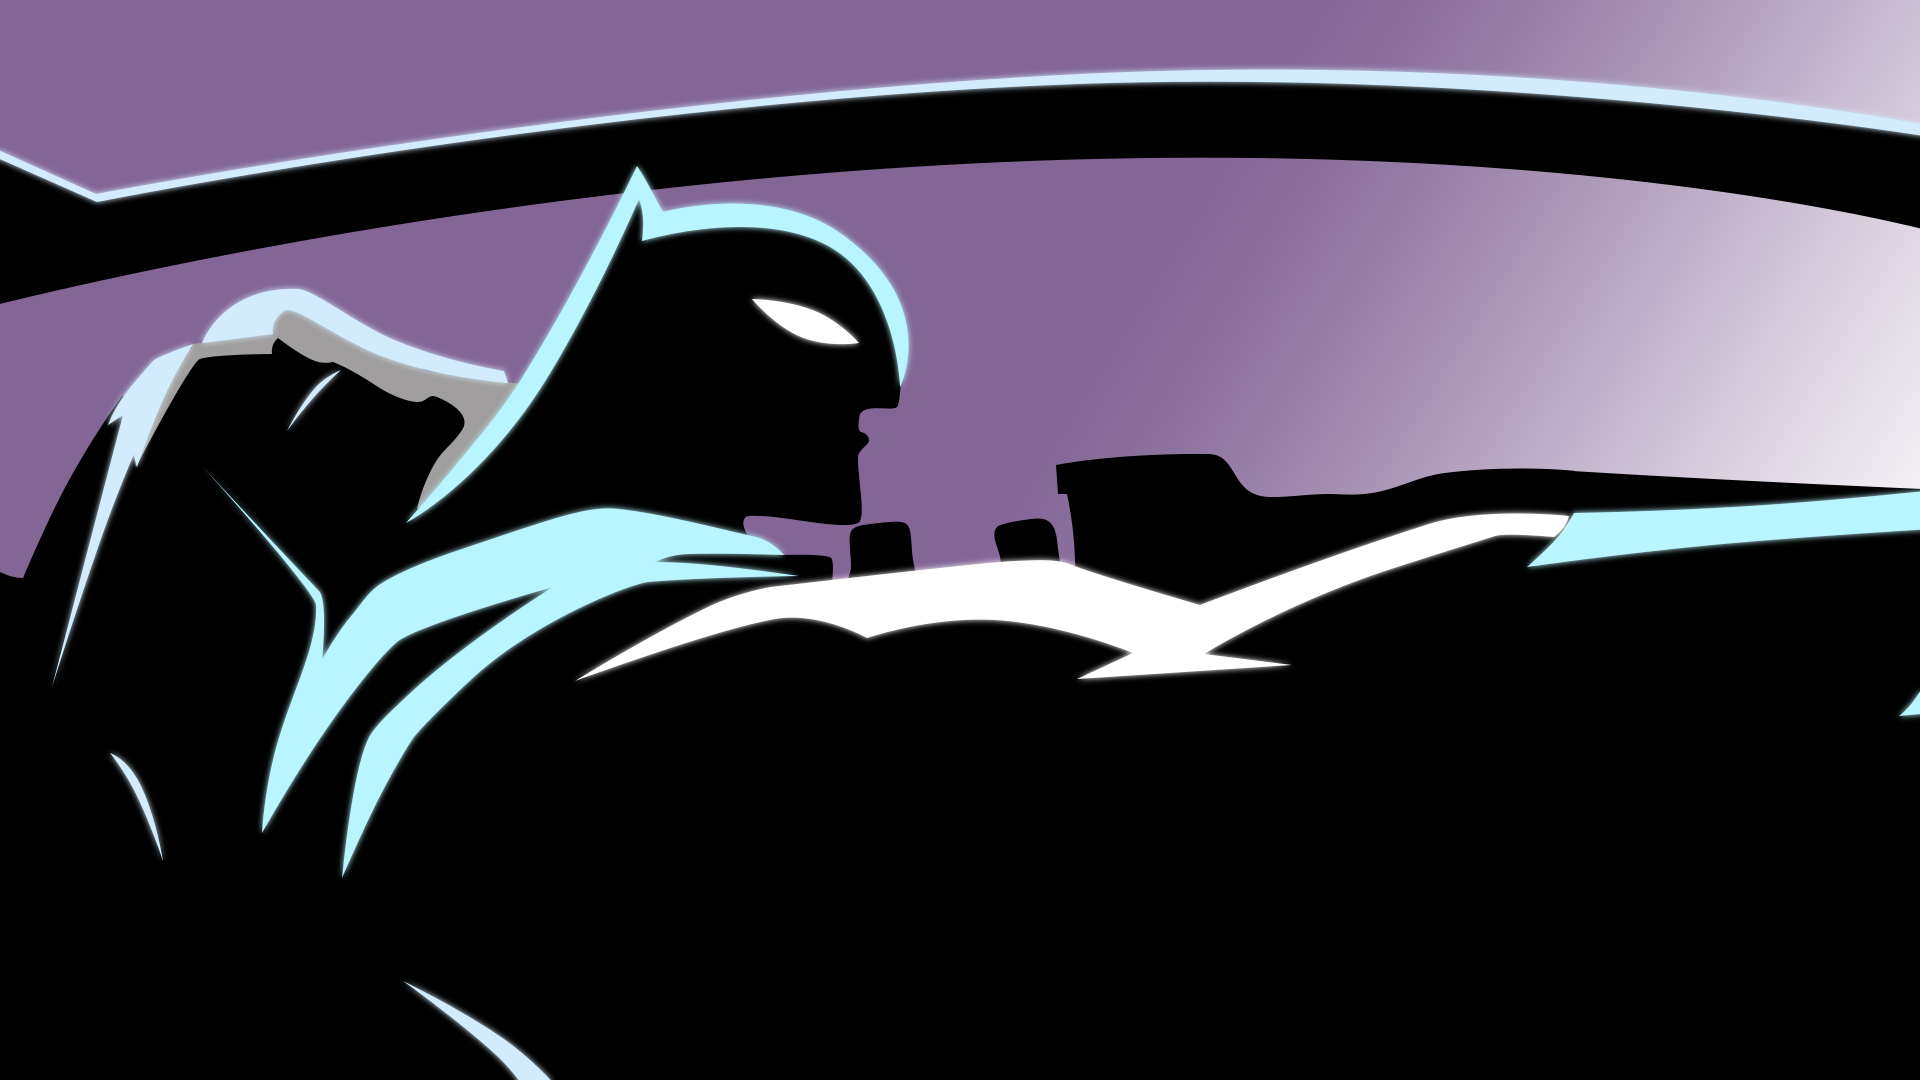 The Batman in The Batmobile in The Darkness.png